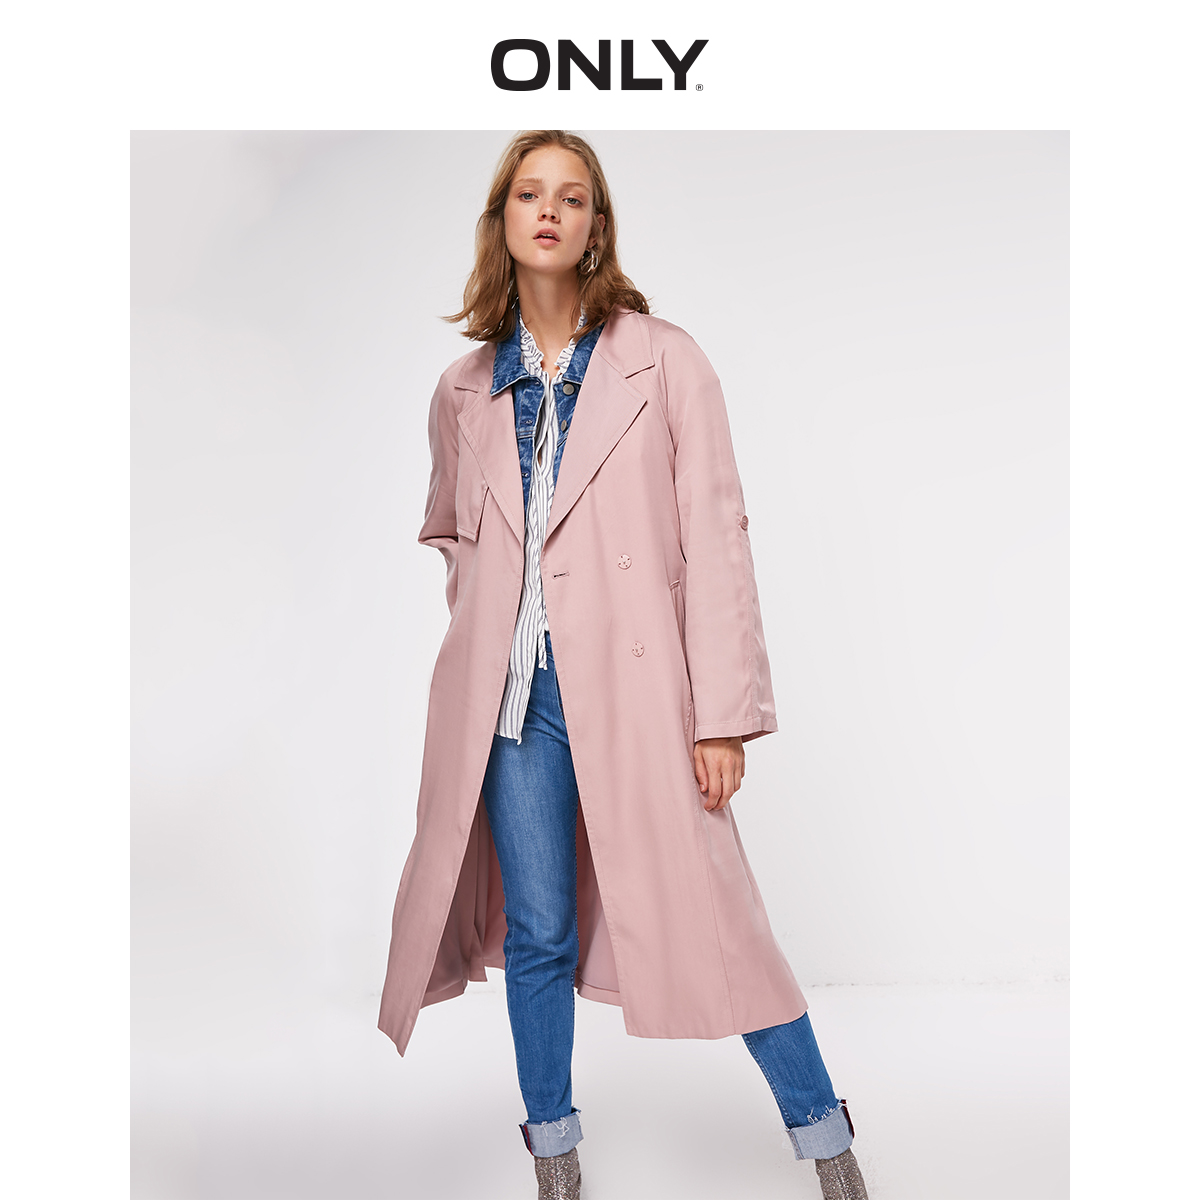 Women's Lace-up Cinched Waist Loose Fit Overknee Trench Coat  | 118336548